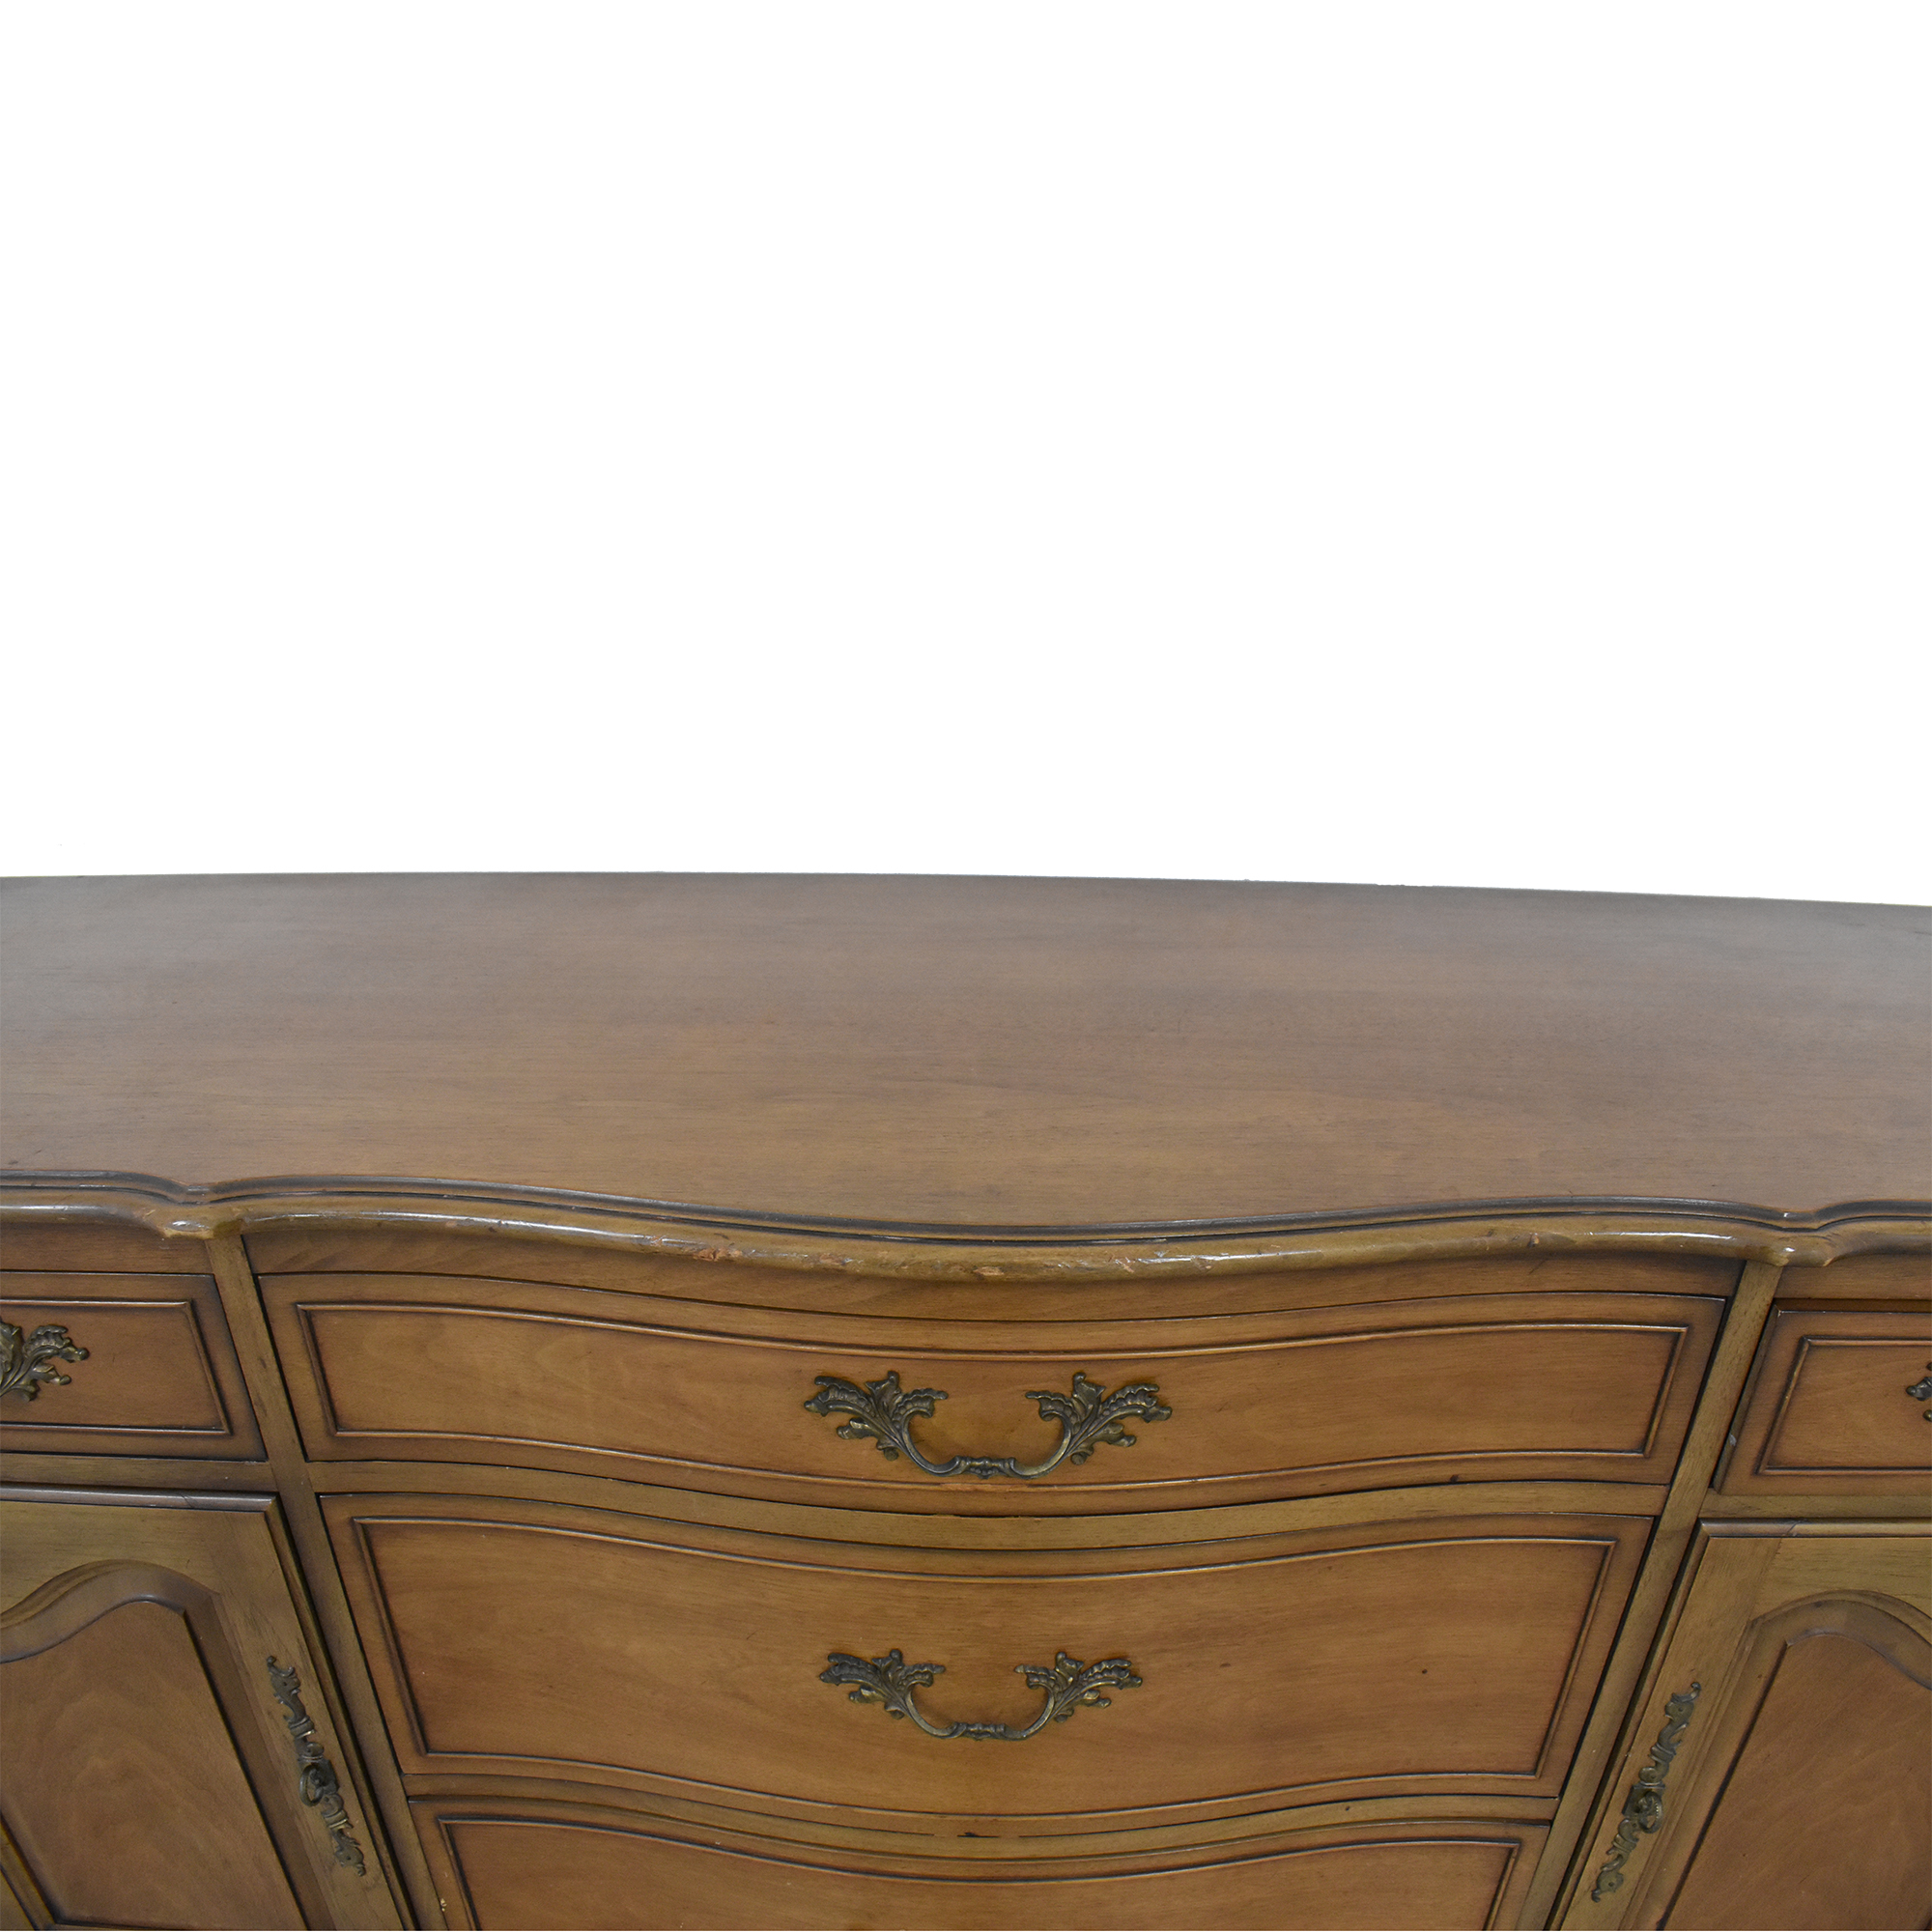 buy Drexel French Provincial Buffet Drexel Cabinets & Sideboards